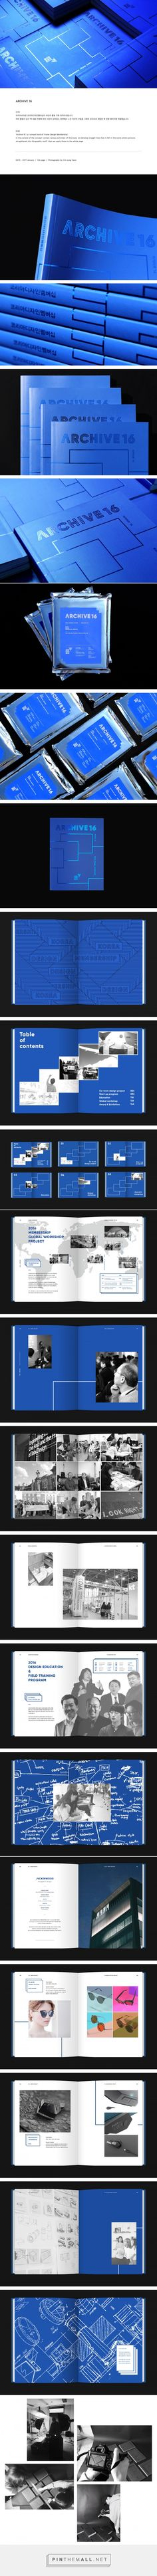 2016 Annual book / Korea design membership on Behance https://www.behance.net/gallery/49410361/2016-Annual-book-Korea-design-membership - created via https://pinthemall.net